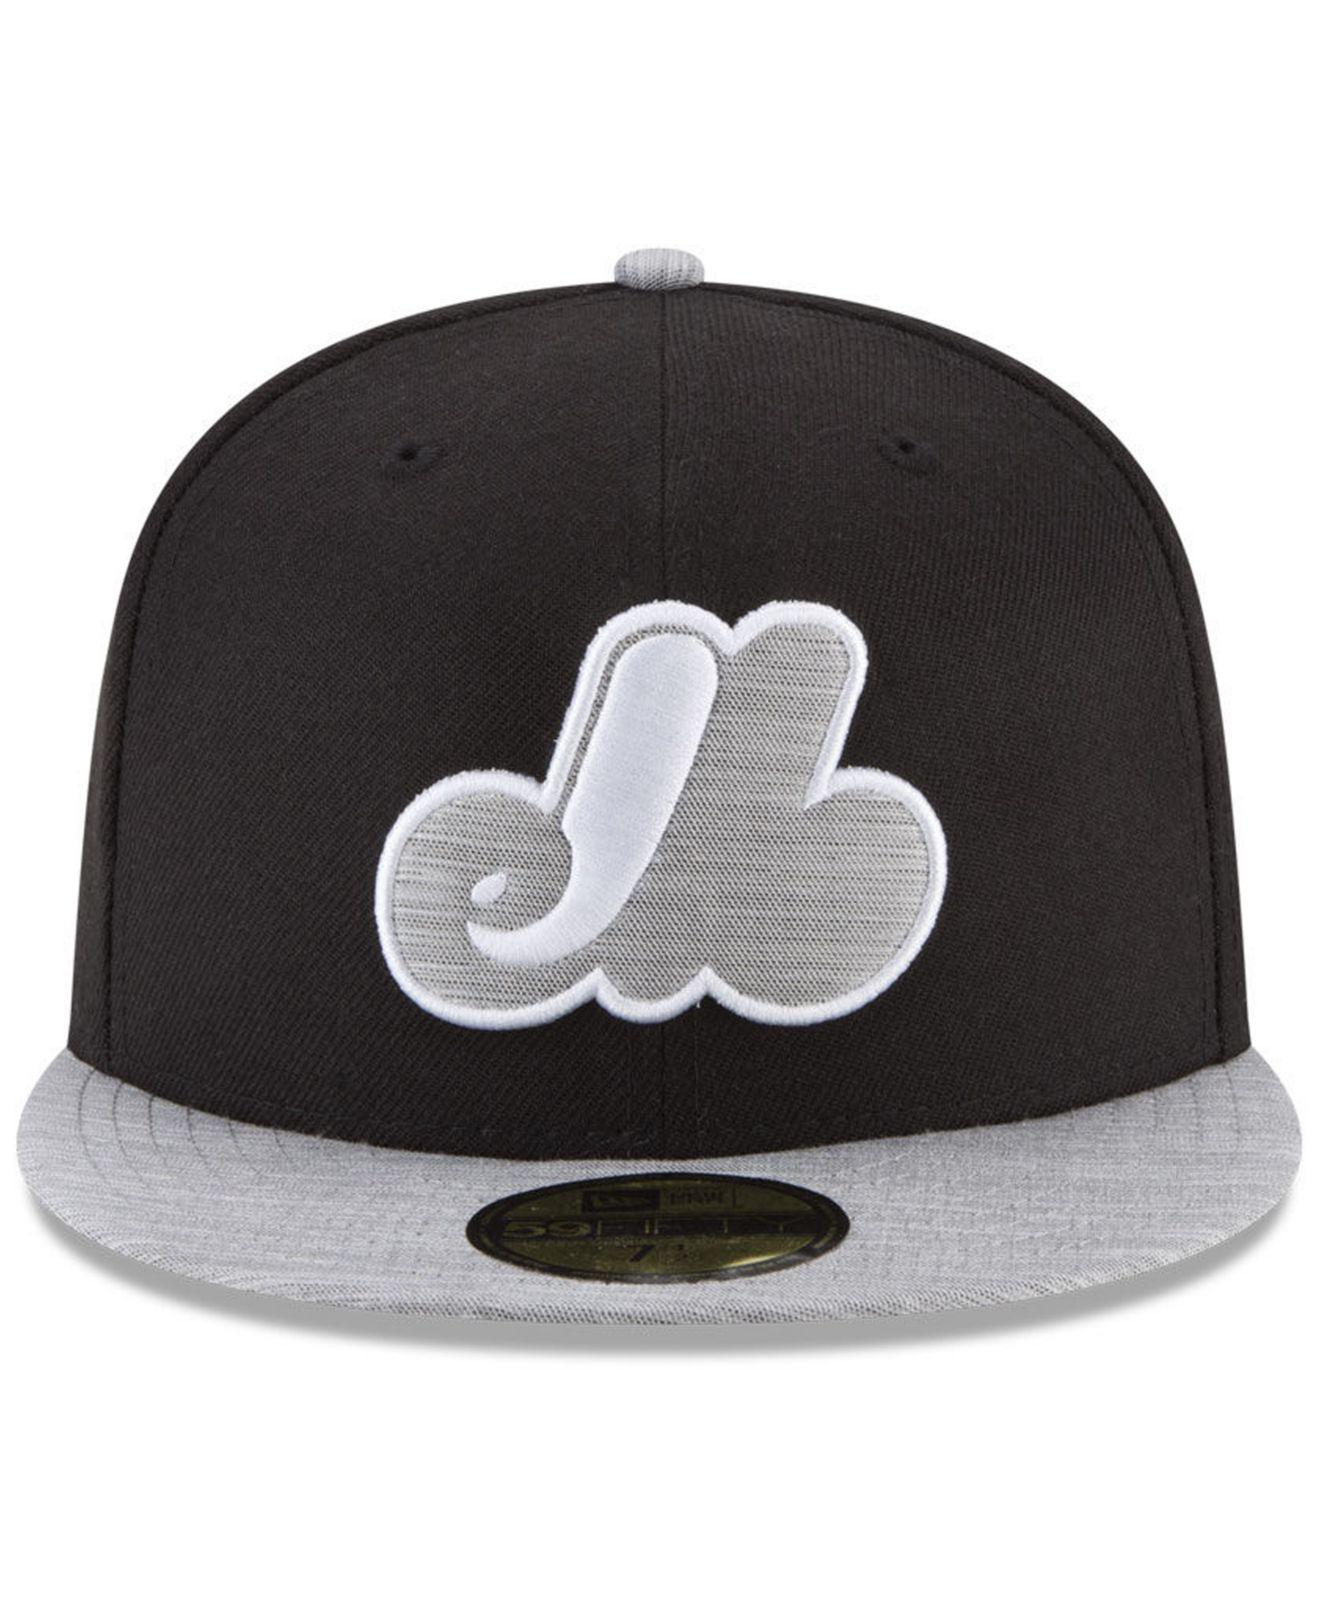 size 40 52ccb 2c9cd KTZ - Montreal Expos Black Heather Coop 59fifty Fitted Cap for Men - Lyst.  View fullscreen